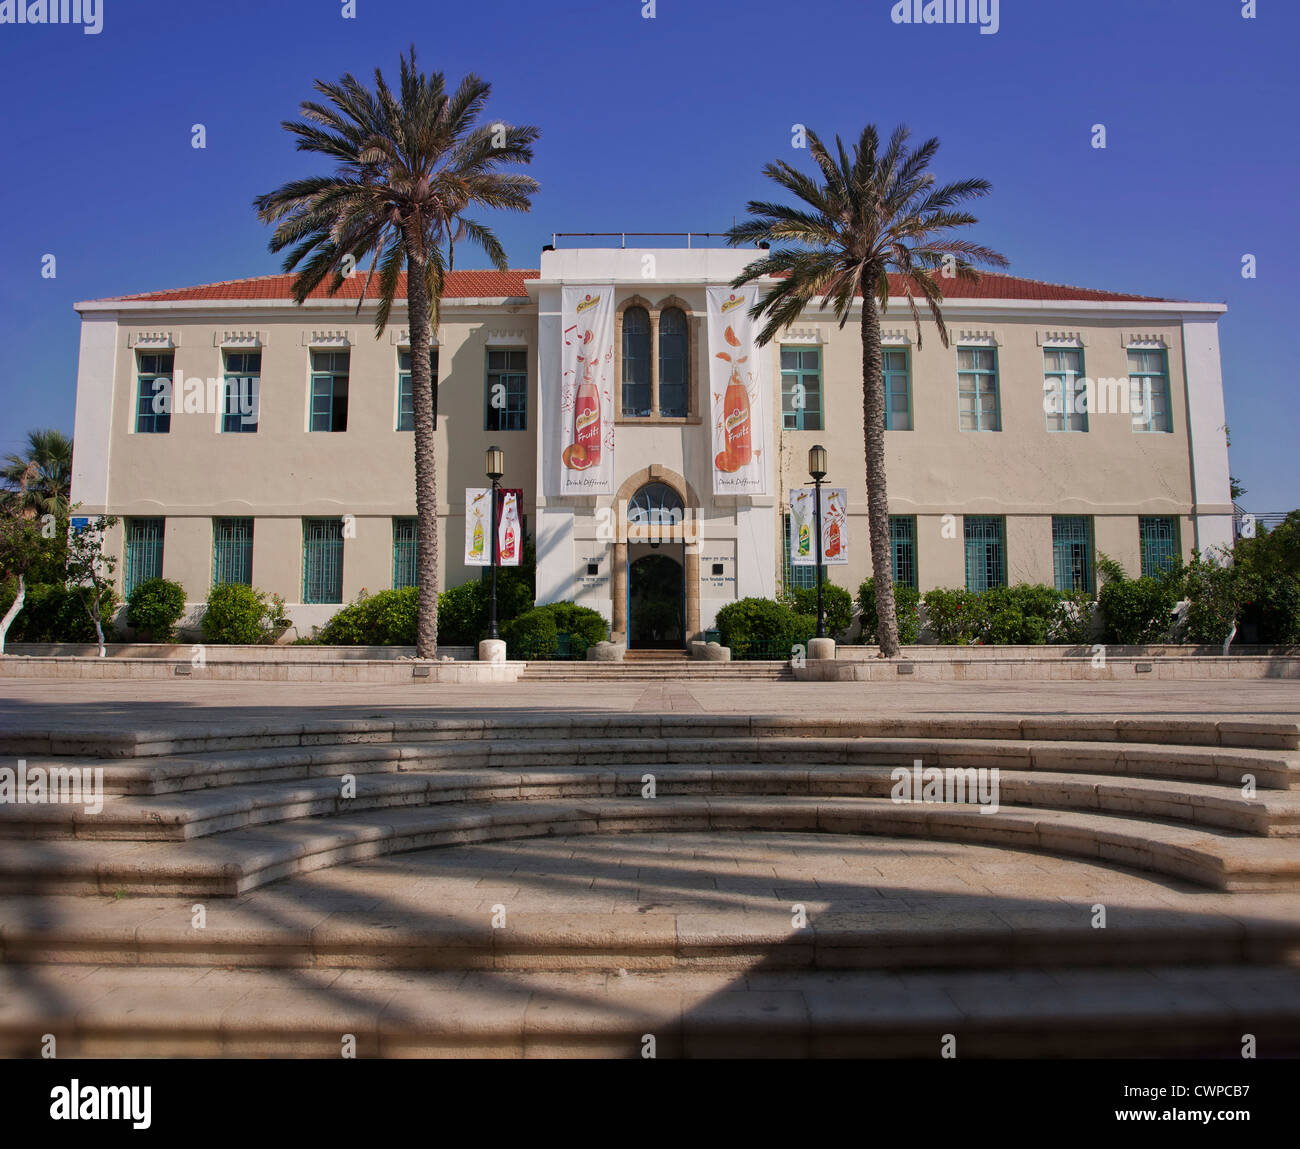 Middle East. Israel. Tel Aviv. The Suzanne Dellal Centre for Dance and Theatre (Batsheva Dance Company). - Stock Image